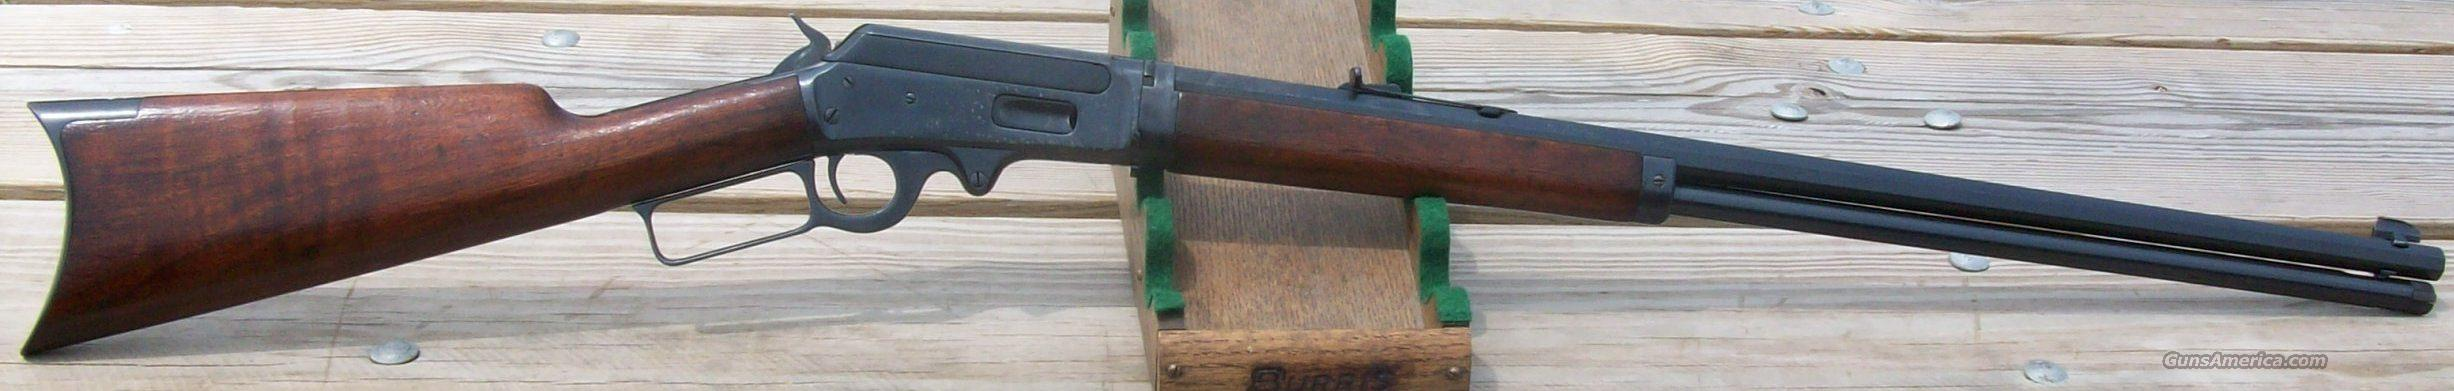 Marlin Model 1893  Guns > Rifles > Marlin Rifles > Modern > Lever Action